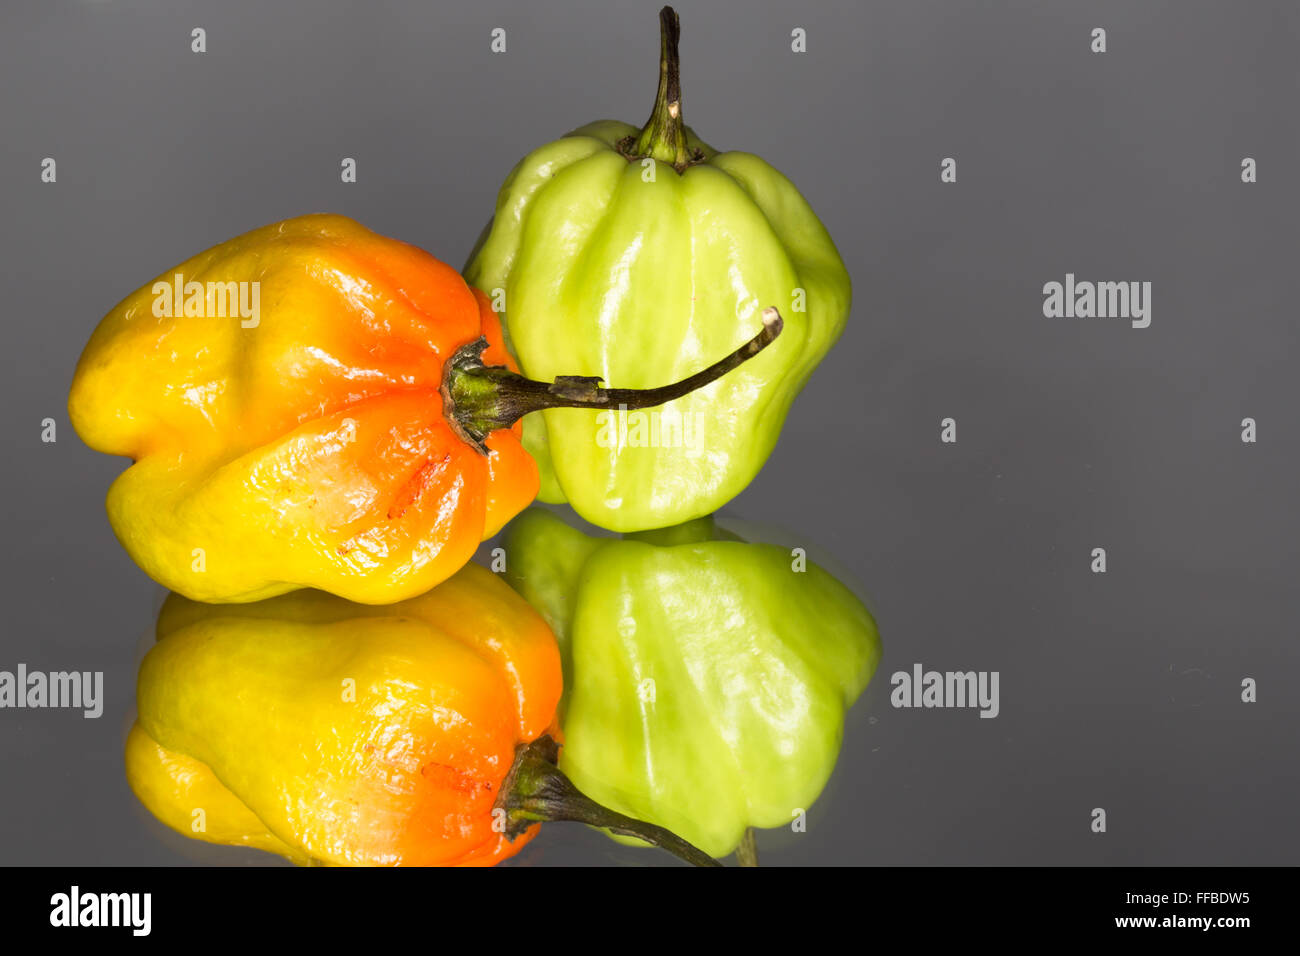 A macro image of two Golden Habanero Chili Peppers reflected on a mirrored surface - Stock Image